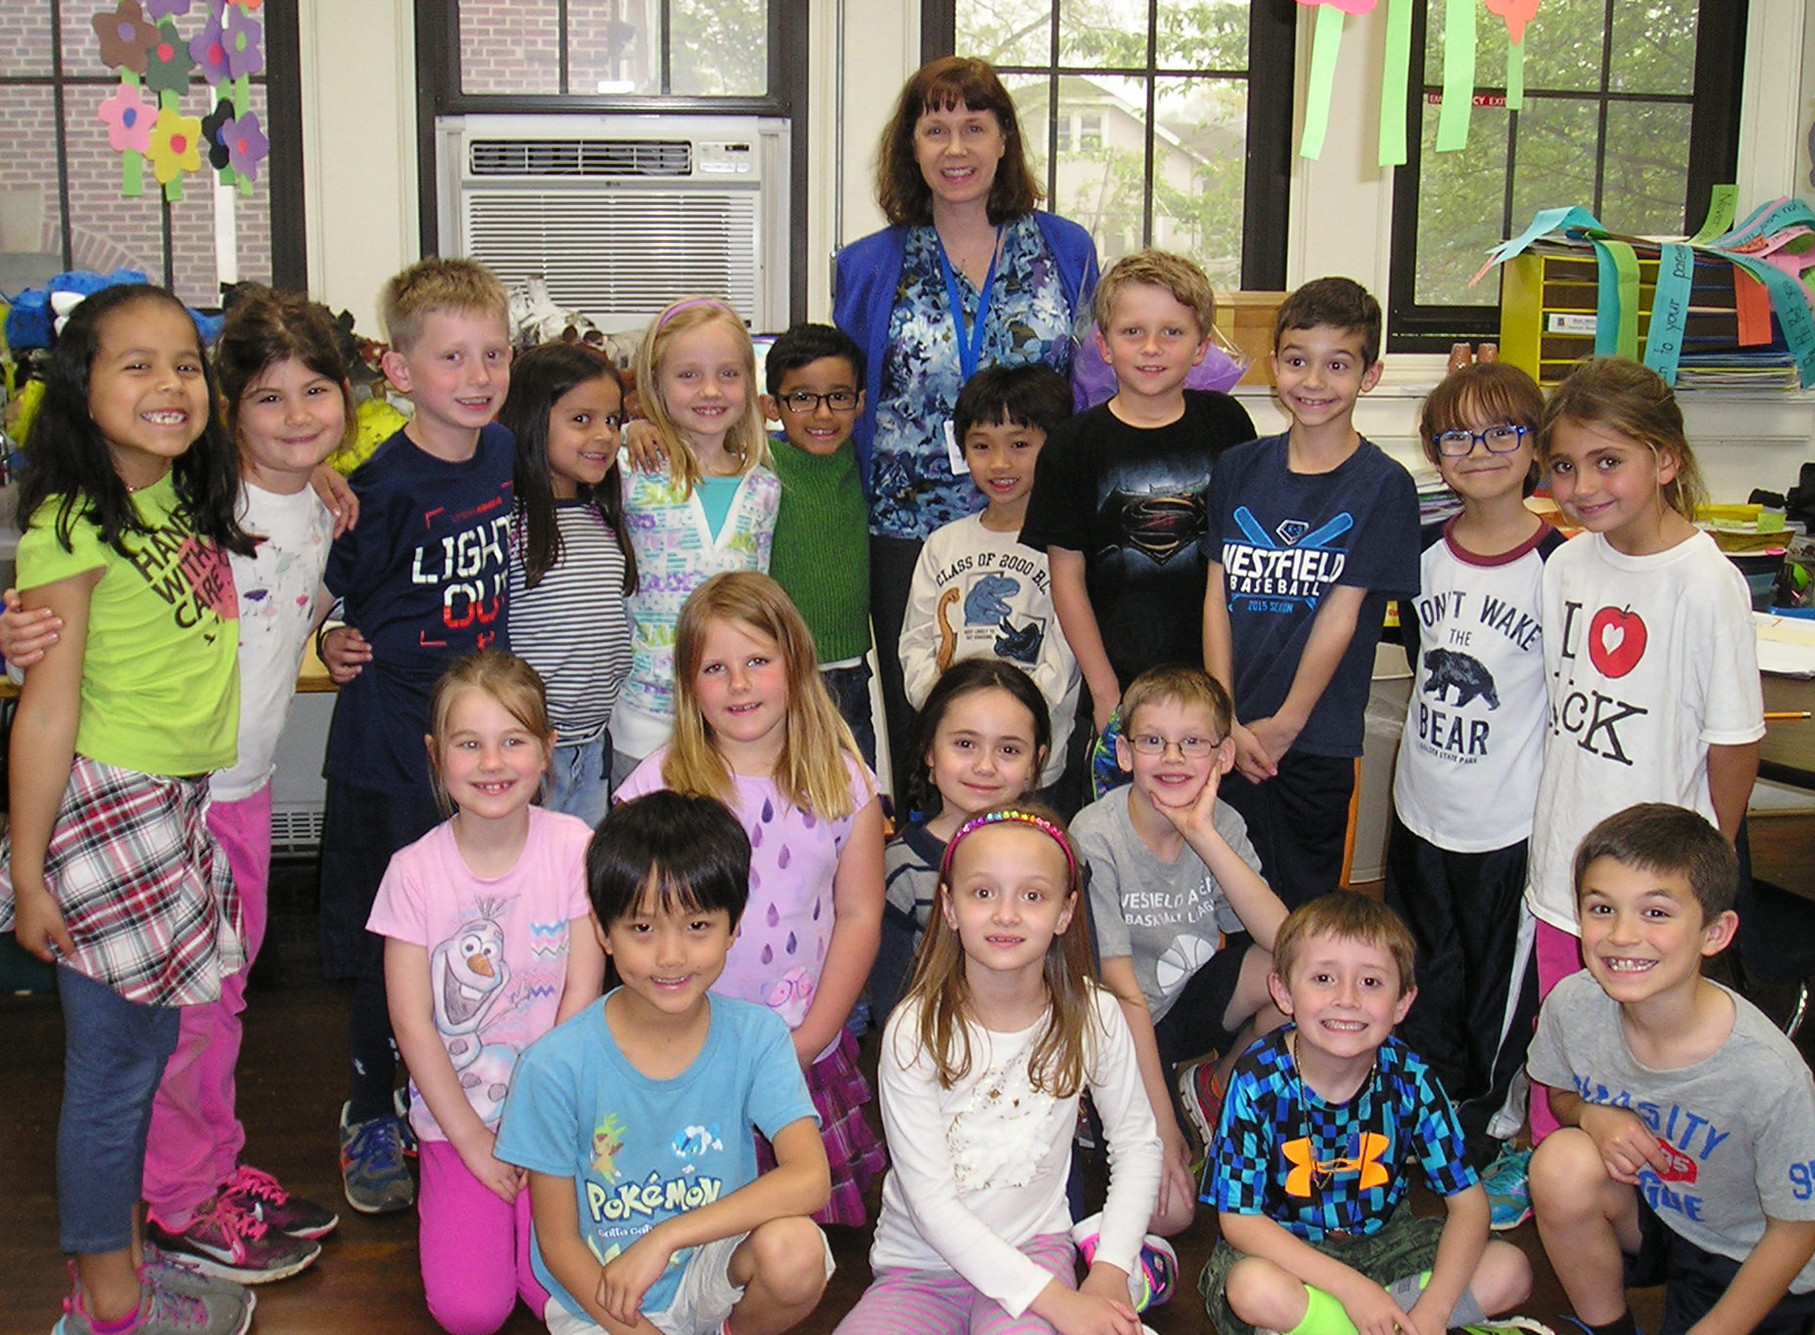 (above) McKinley Elementary School teacher, Susanne Bonhote, this year's recipient of the Westfield Rotary's Philhower Fellowship for outstanding teaching at the elementary grades, is surrounded by pleased and approving first graders in Miss Willis's class.